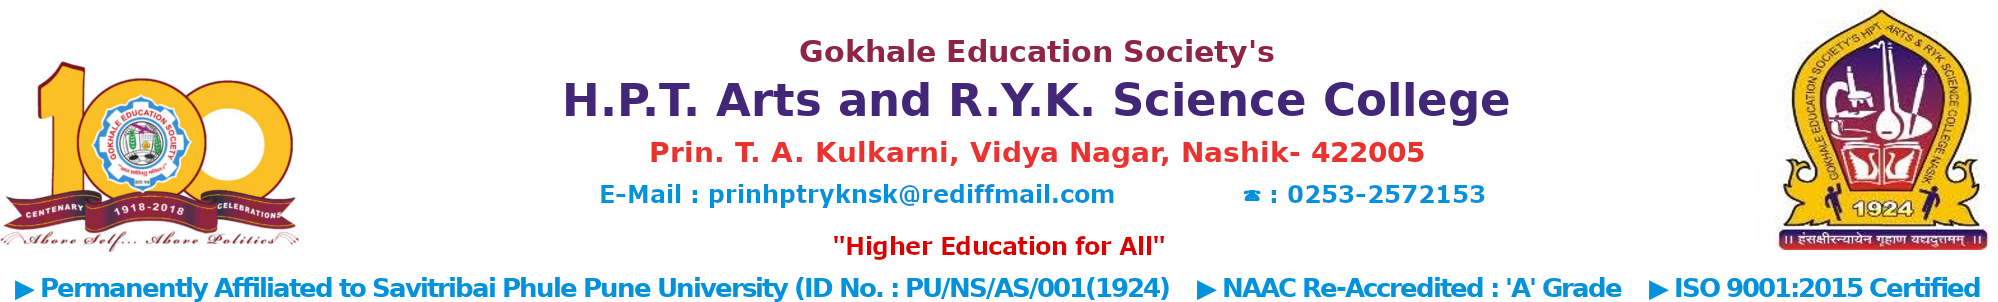 GES H.P.T. Arts and R.Y.K. Science College